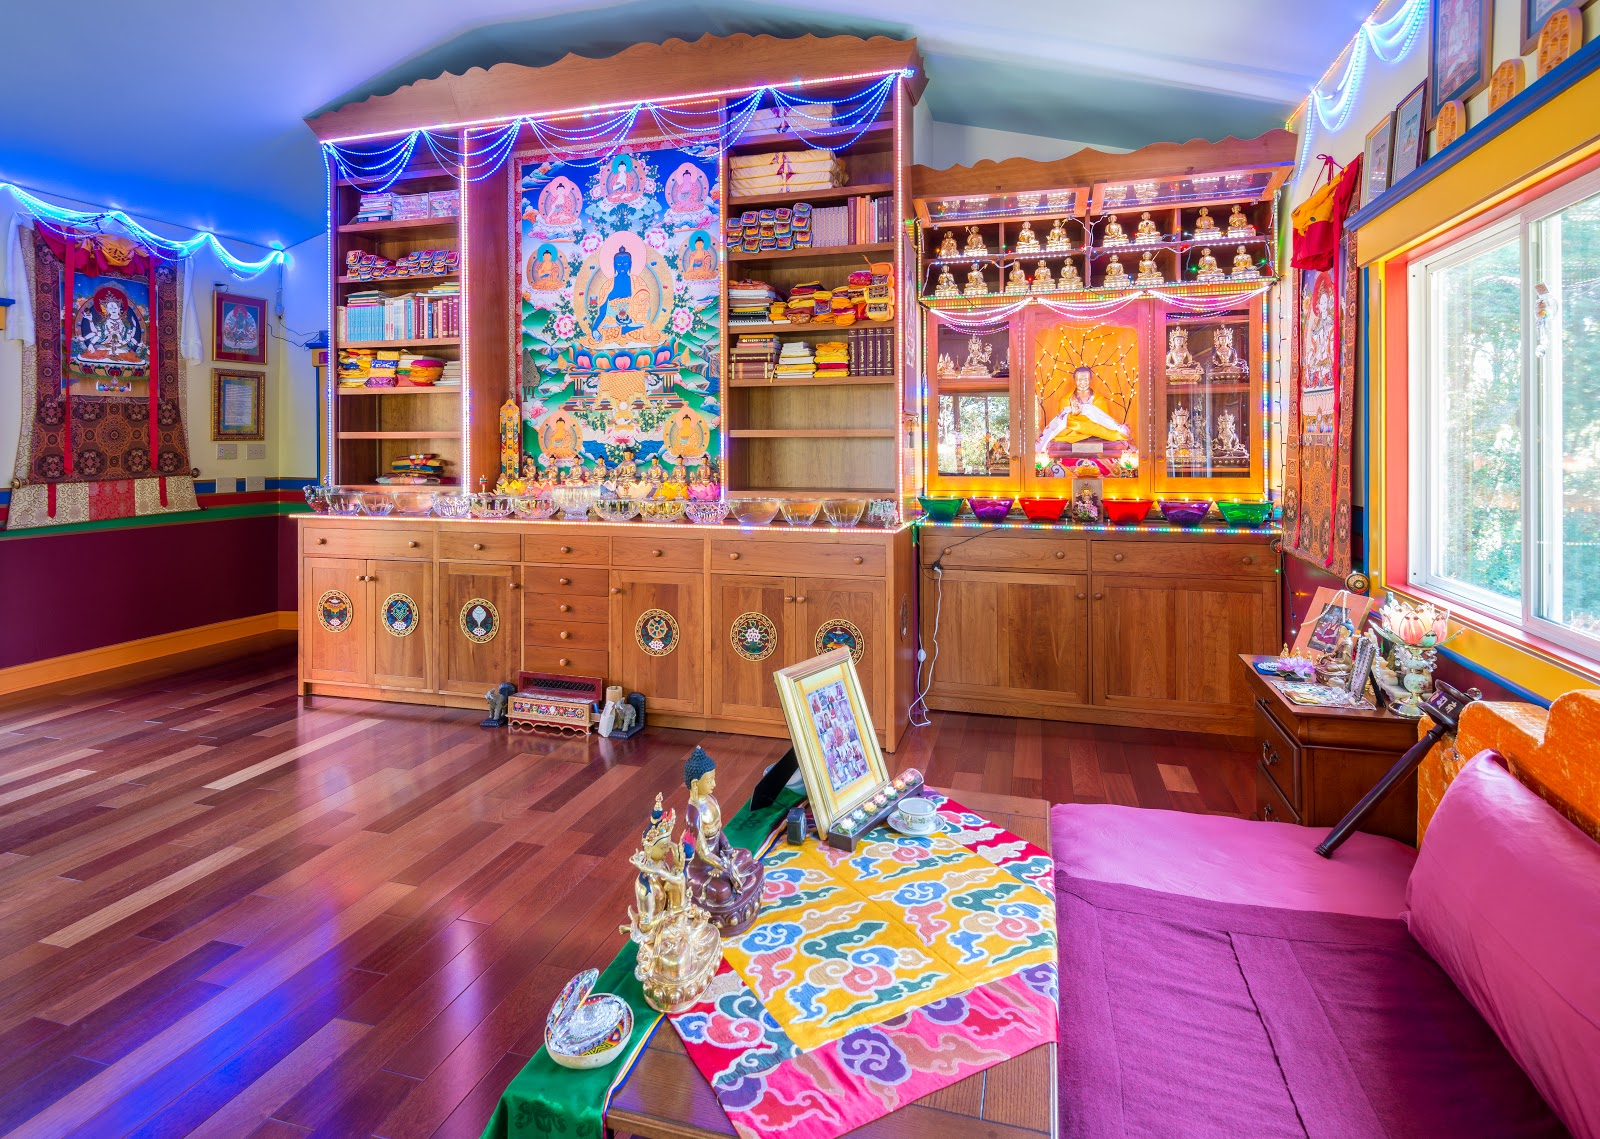 Holy objects and extensive offerings at Kachoe Dechen Ling Photo by Chris Majors.